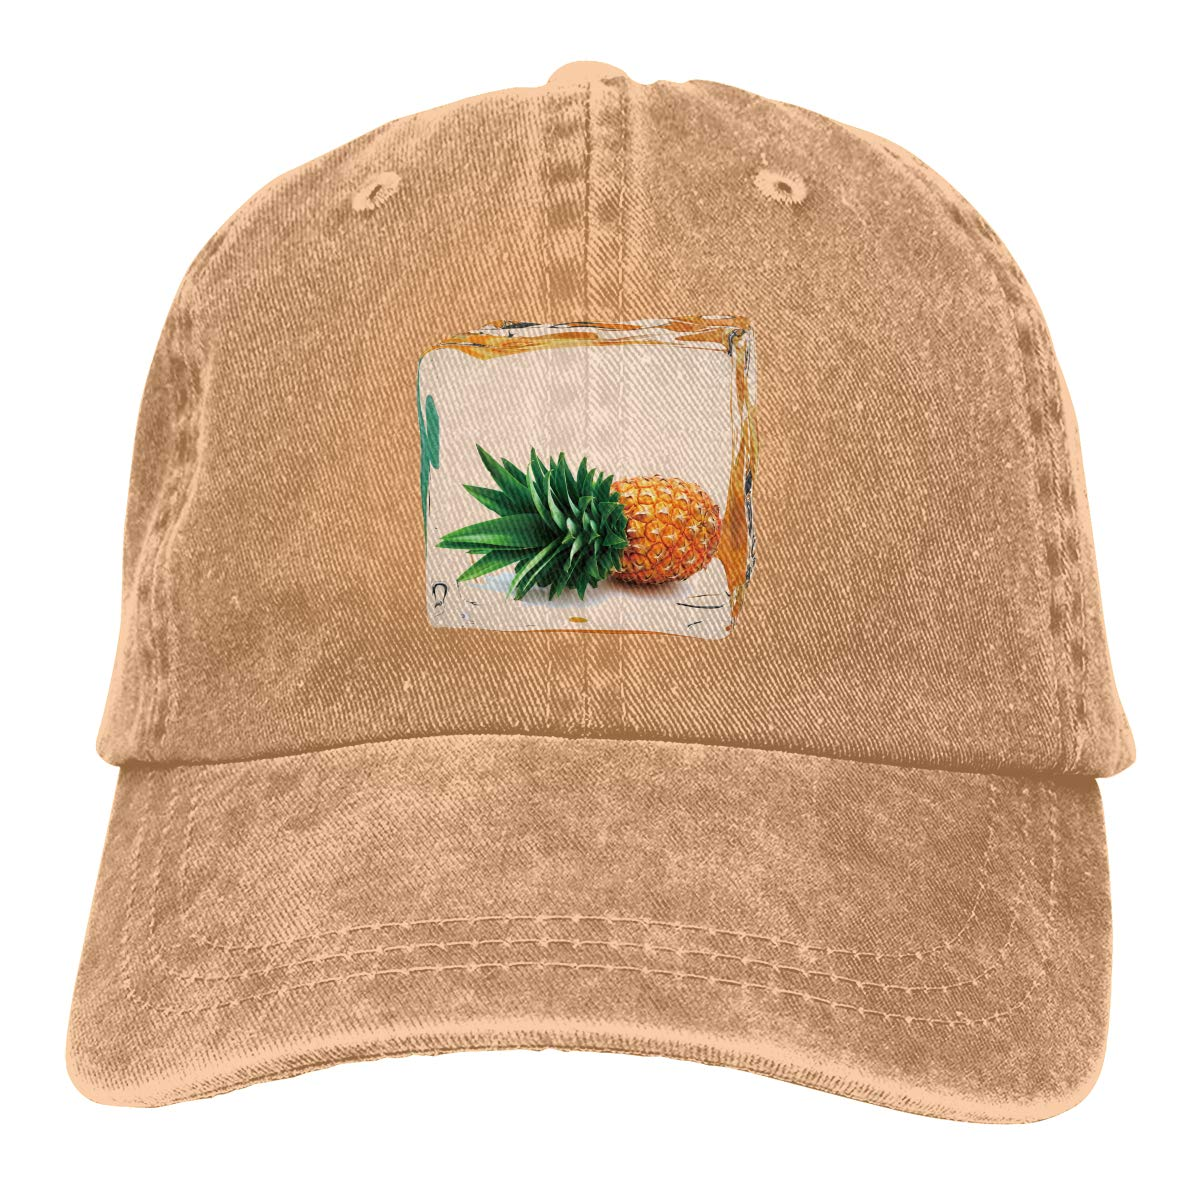 Pineapple Ice Decoration Cowboy Hat Dad Hats Beach Adjustable Cap for Mens Womens